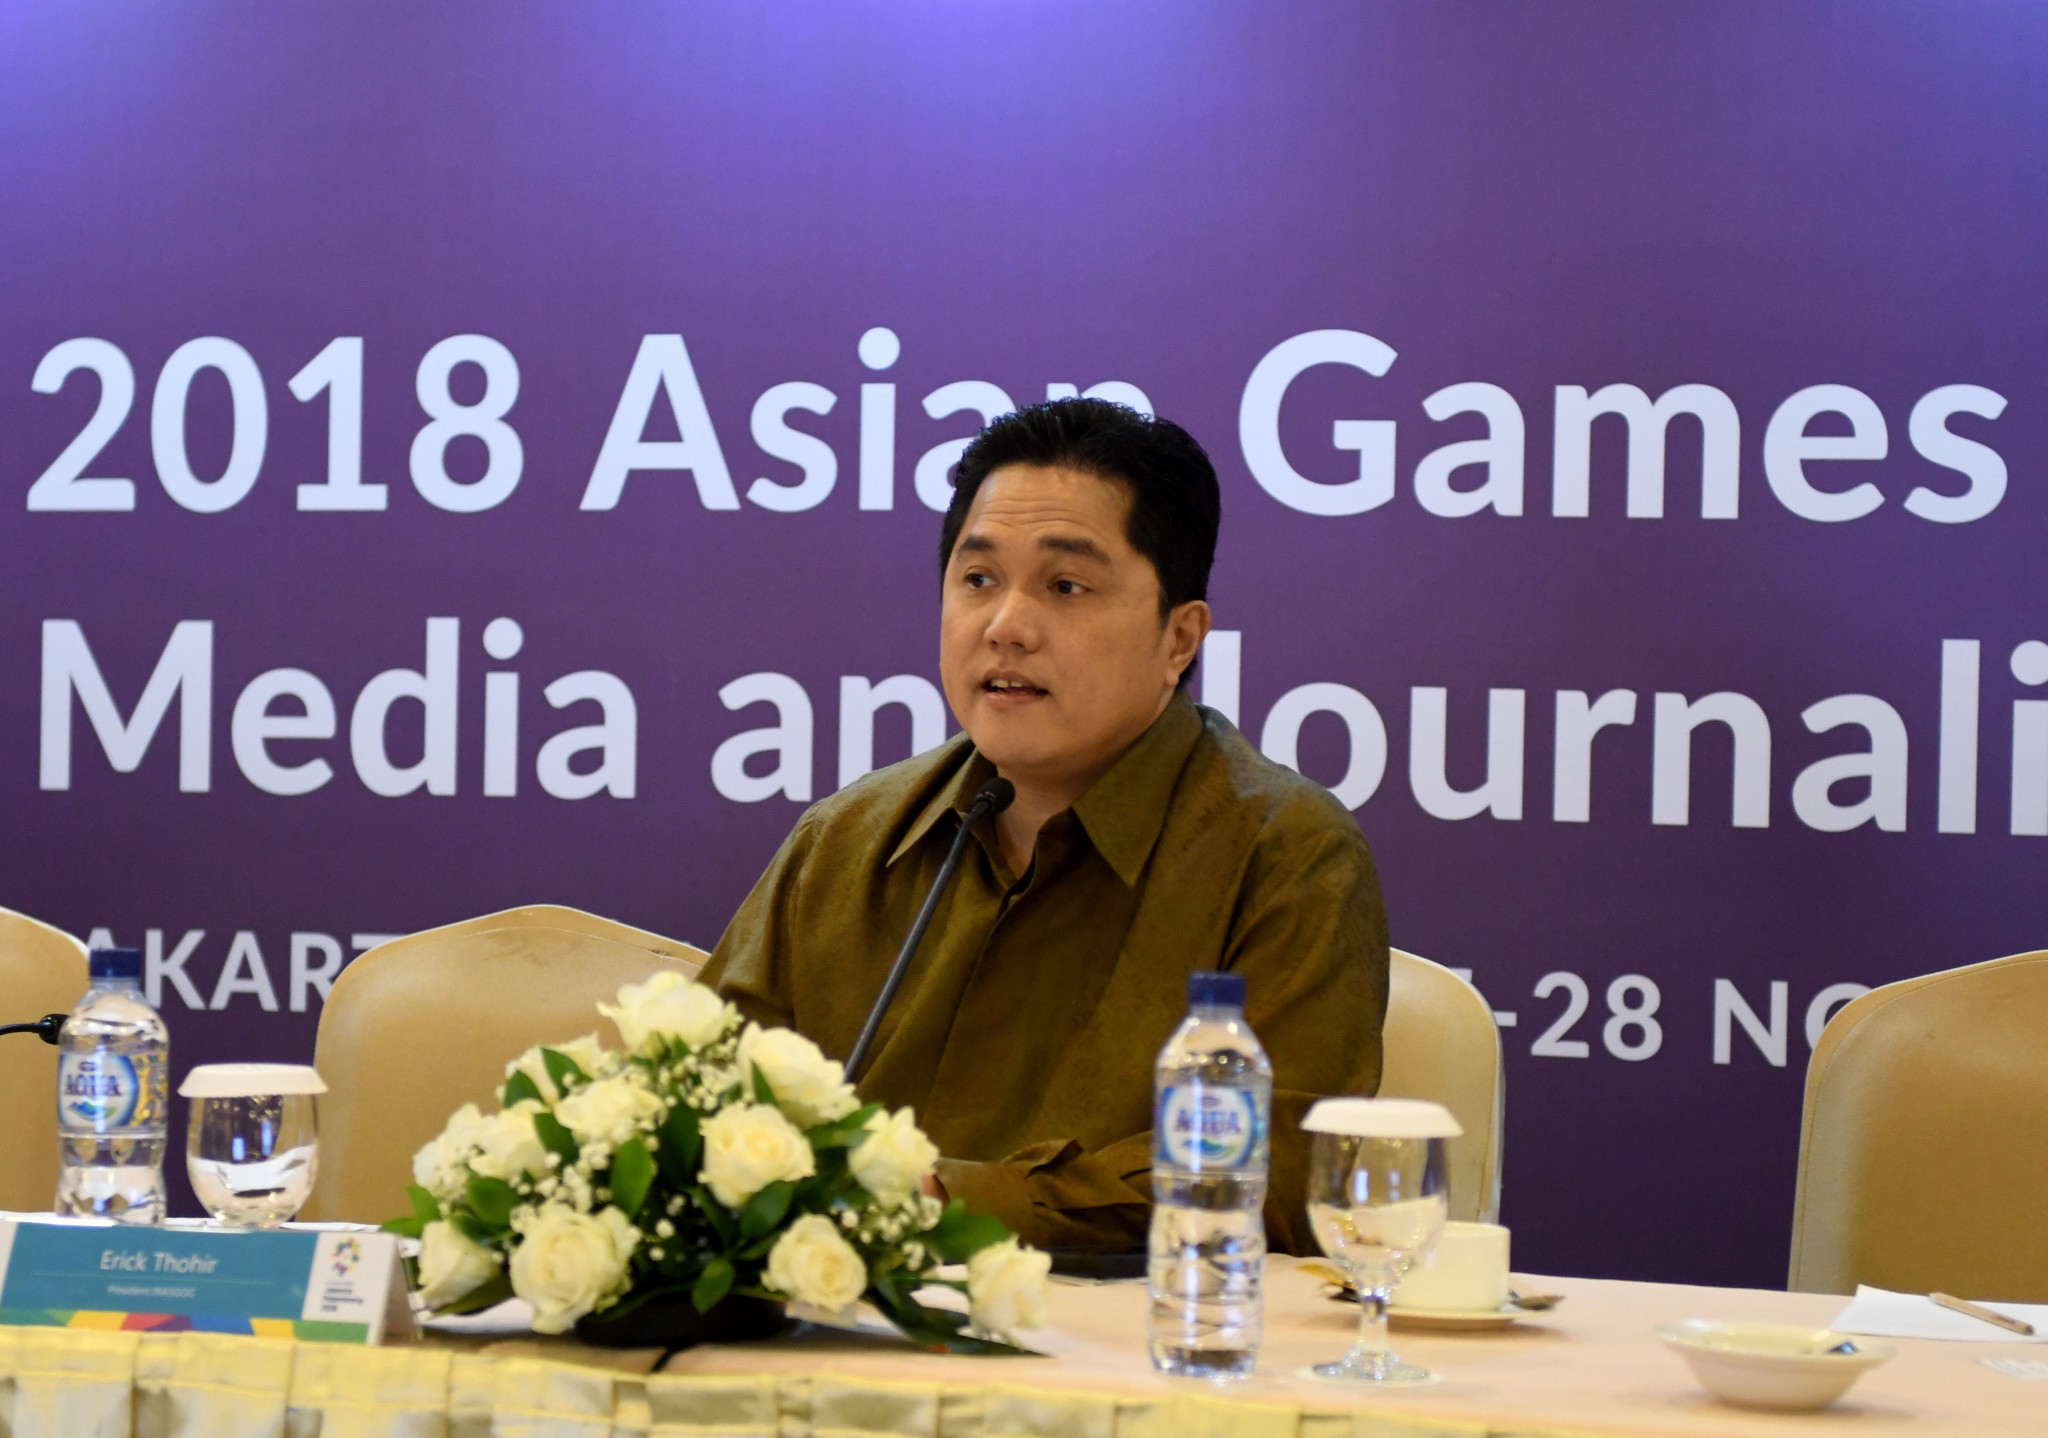 Indonesia wants to host 2032 Olympic Games, Jakarta Palembang 2018 President claims